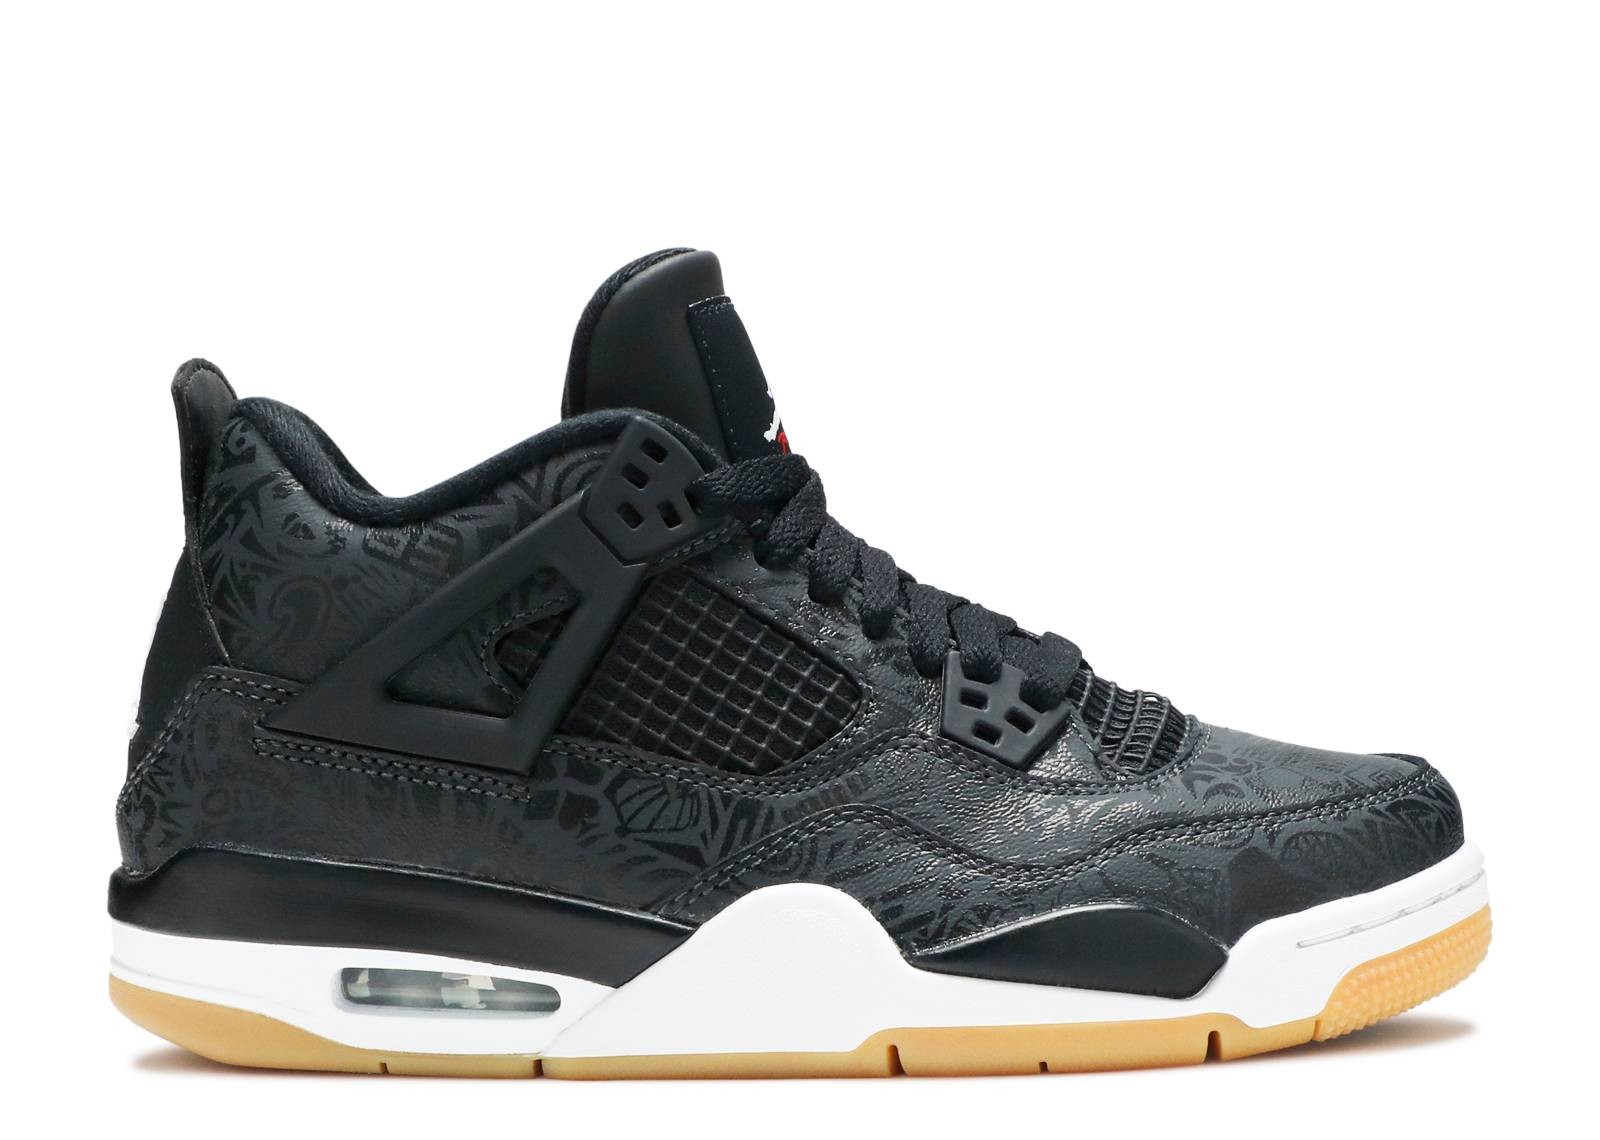 305a8fa59e8 Air Jordan 4 Retro Se (gs) - Air Jordan - ci2970 001 - black/white ...